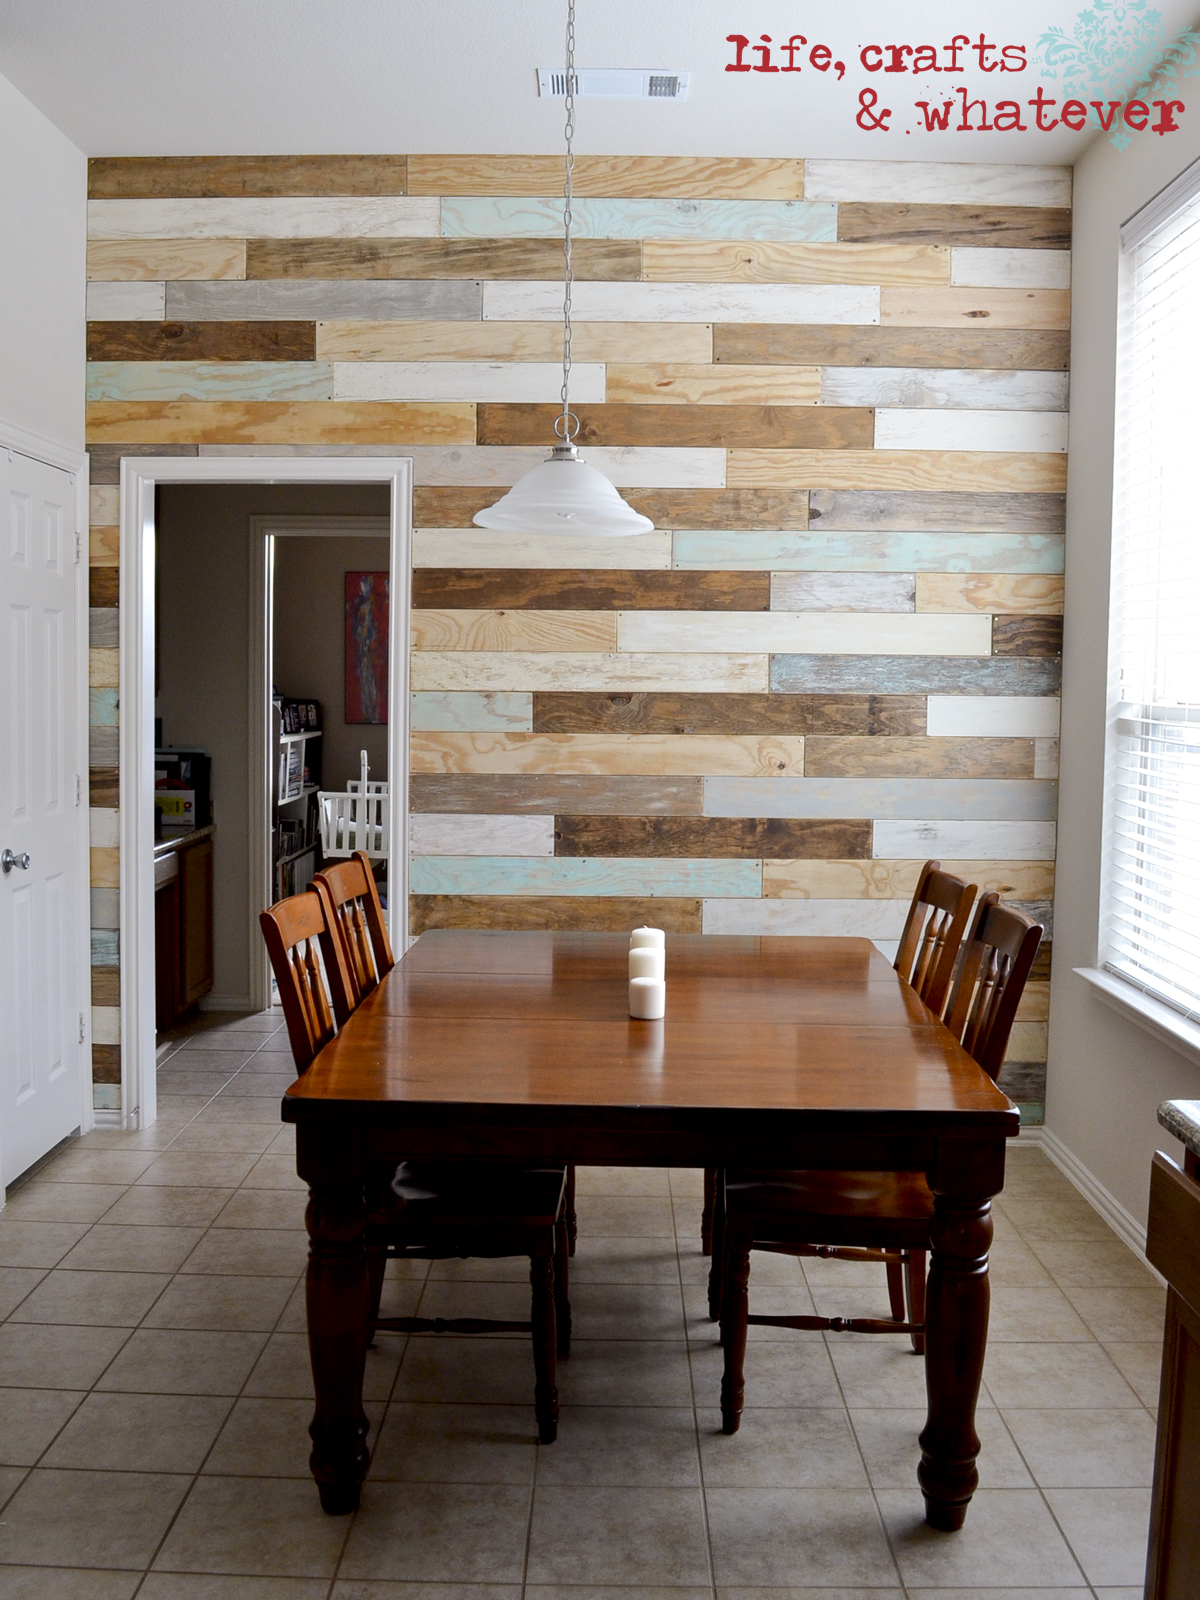 Well-known Life Crafts & Whatever: My plank wall, finally PQ09